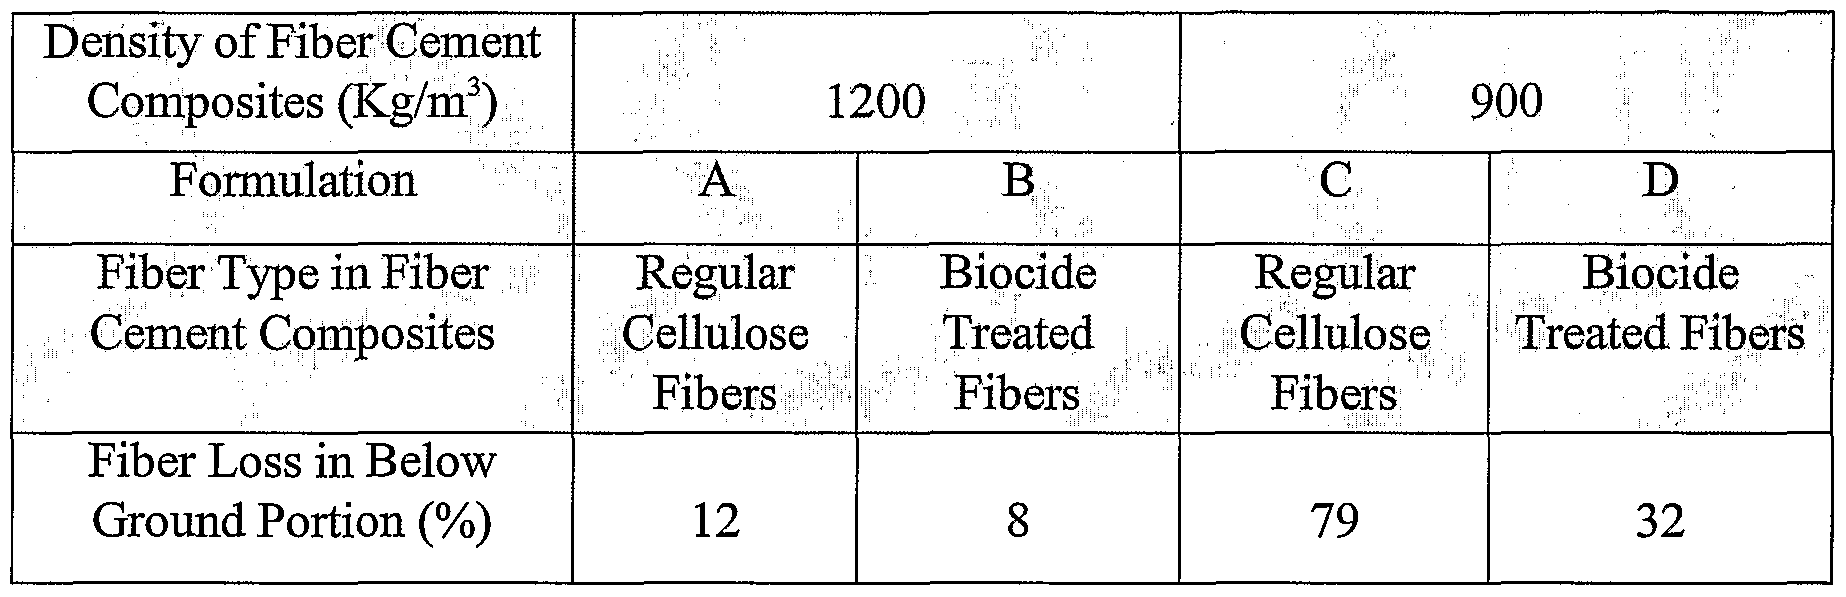 WO2002032830A9 - Fiber cement composite material using biocide